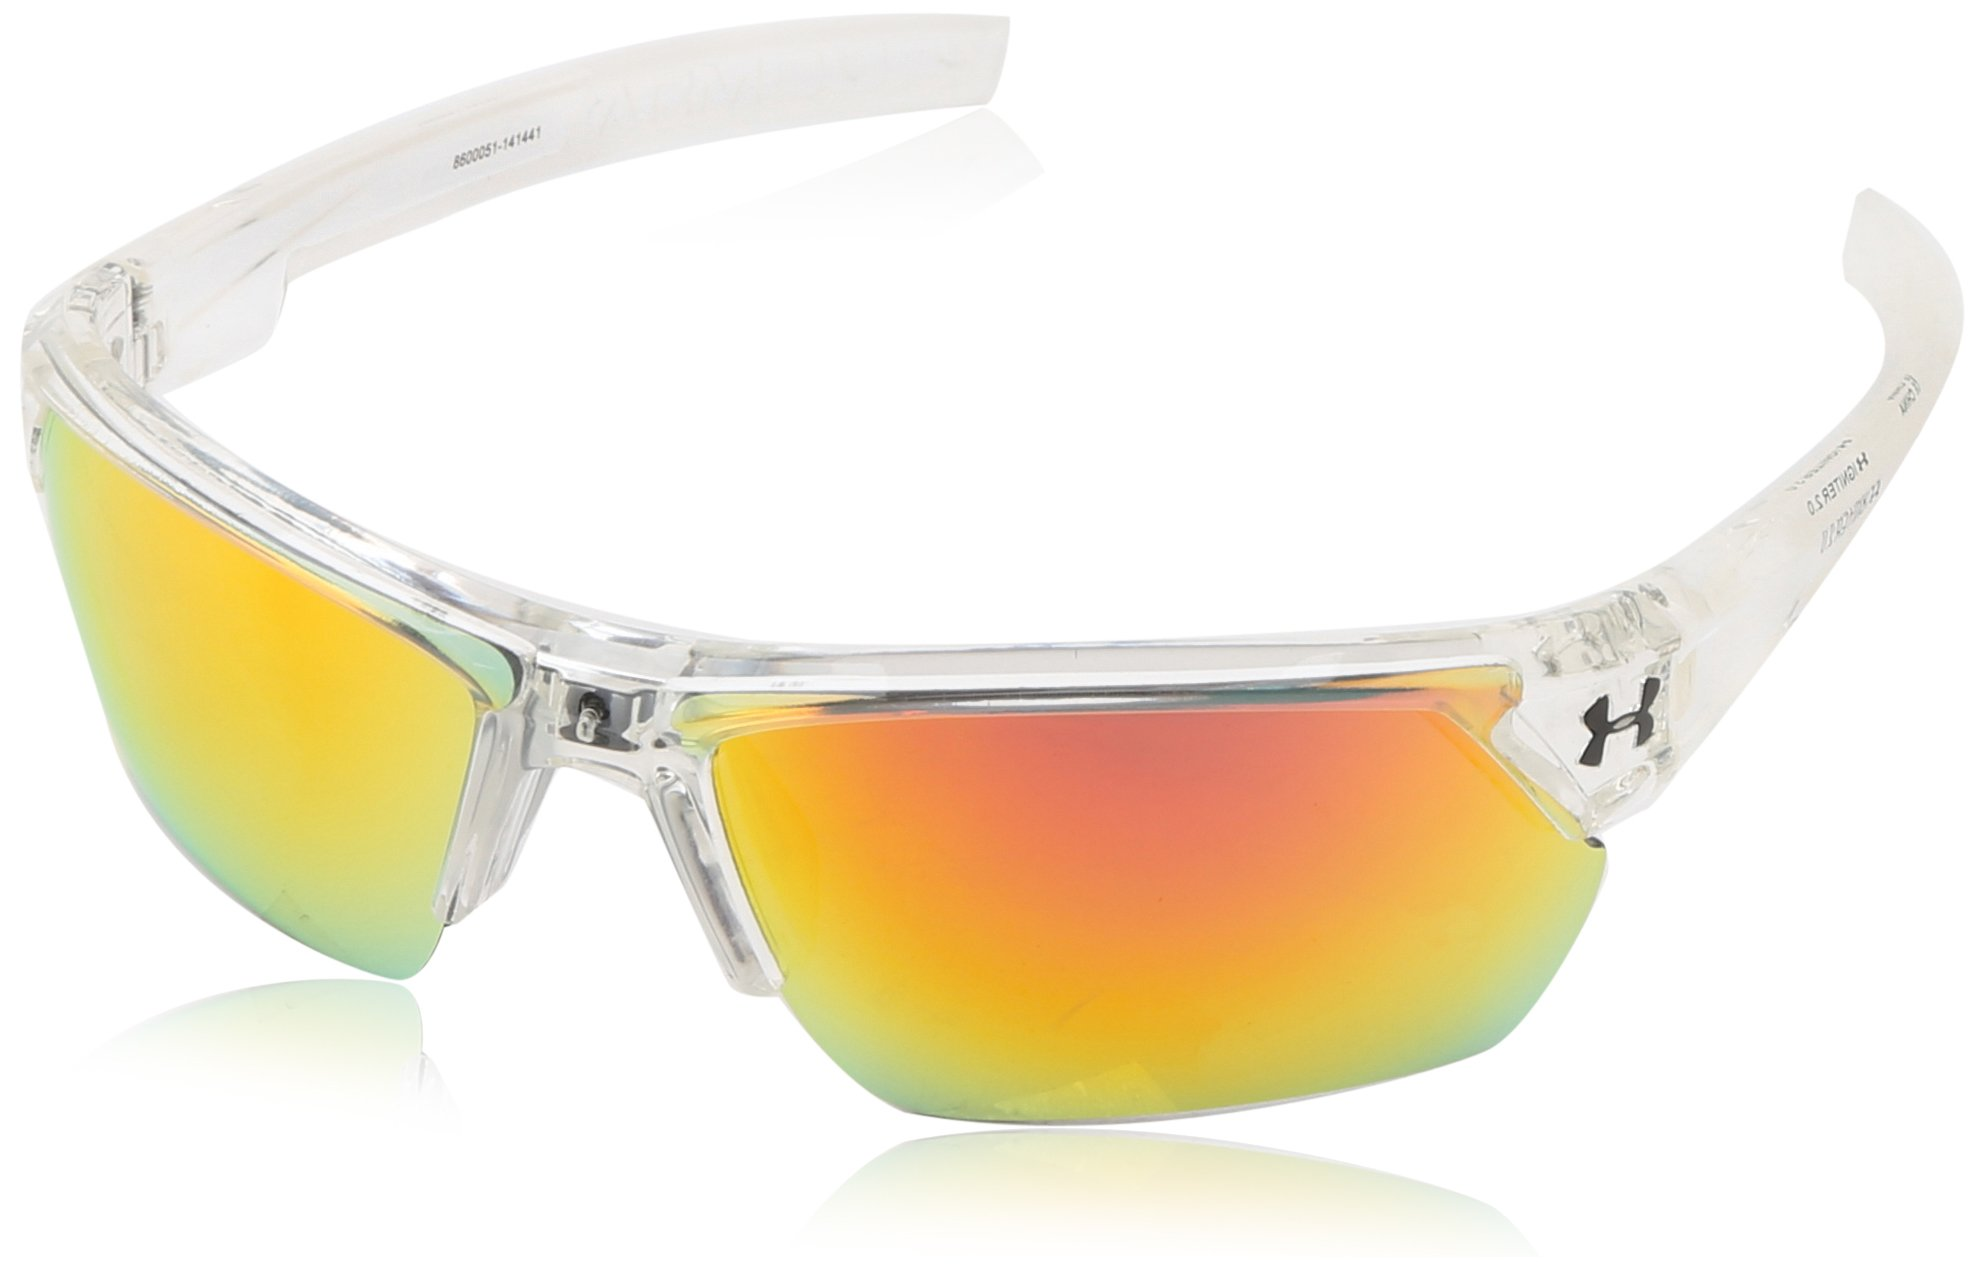 Under Armour Igniter 2.0 Shiny Crystal Clear Frame, with Frosted Clear Rubber and Gray-Orange Multiflection Lens